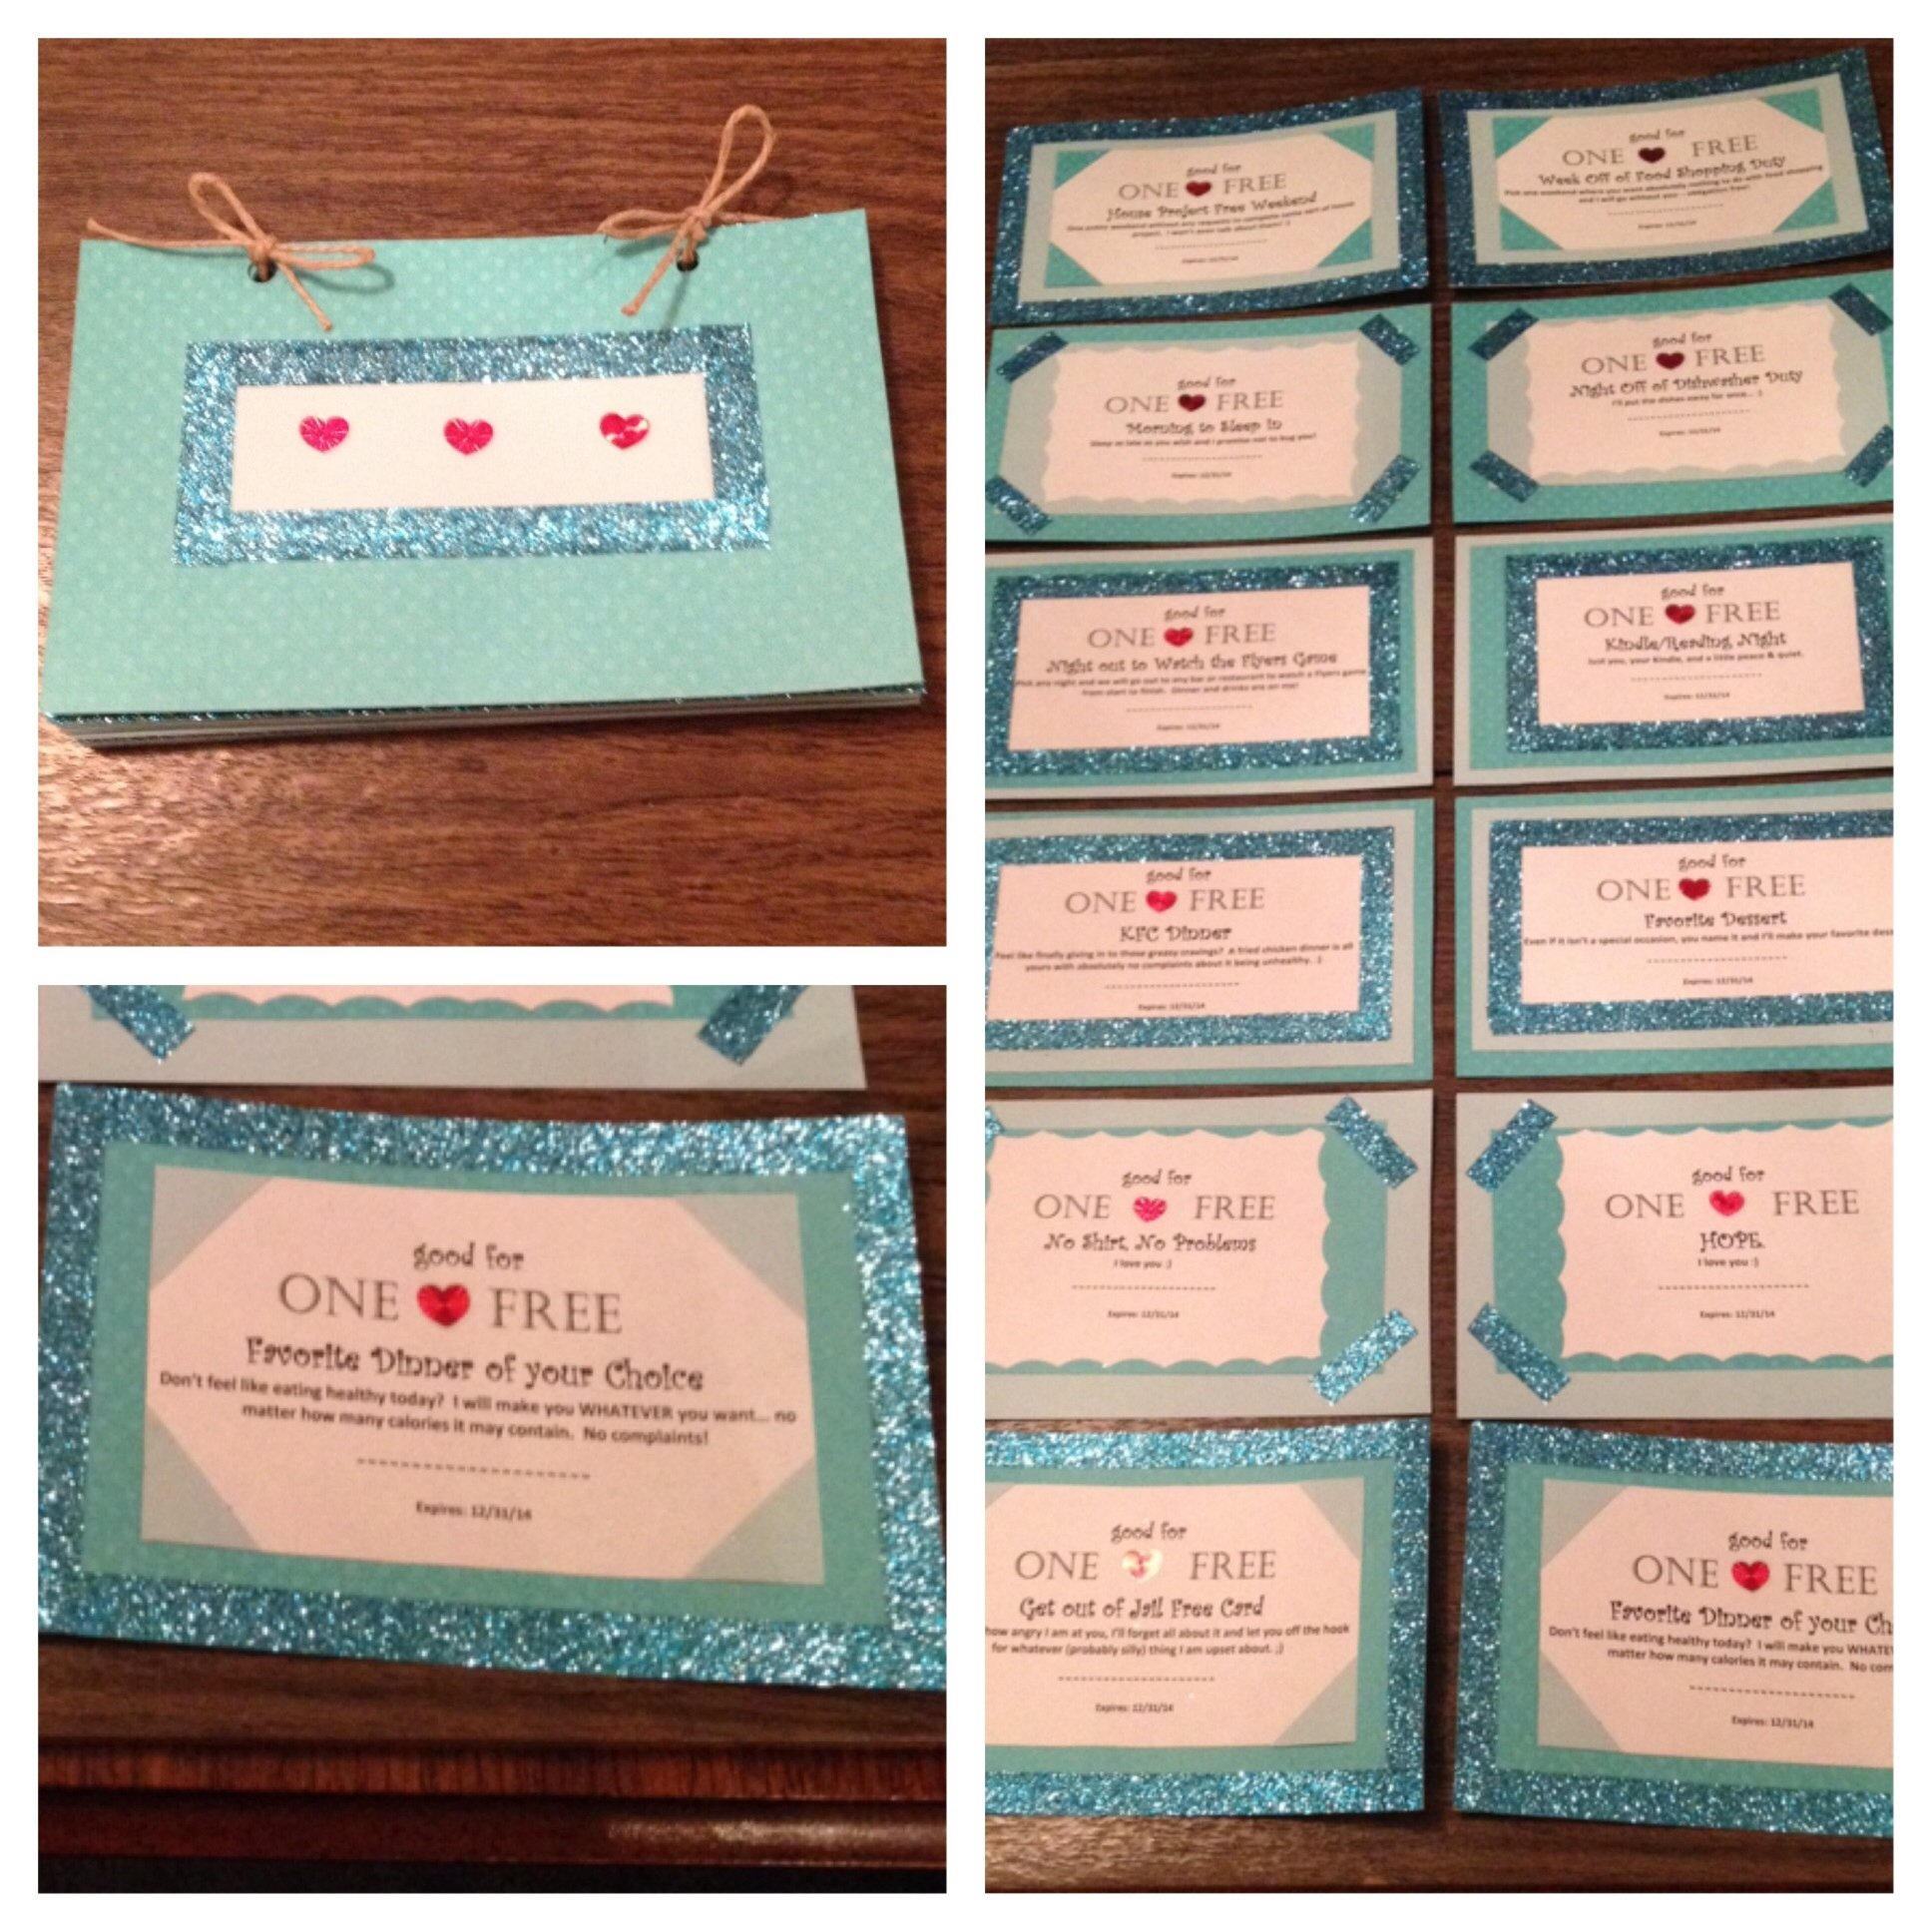 10 Great Coupon Book Ideas For Boyfriend boyfriend coupons christmas pinterest boyfriend coupons